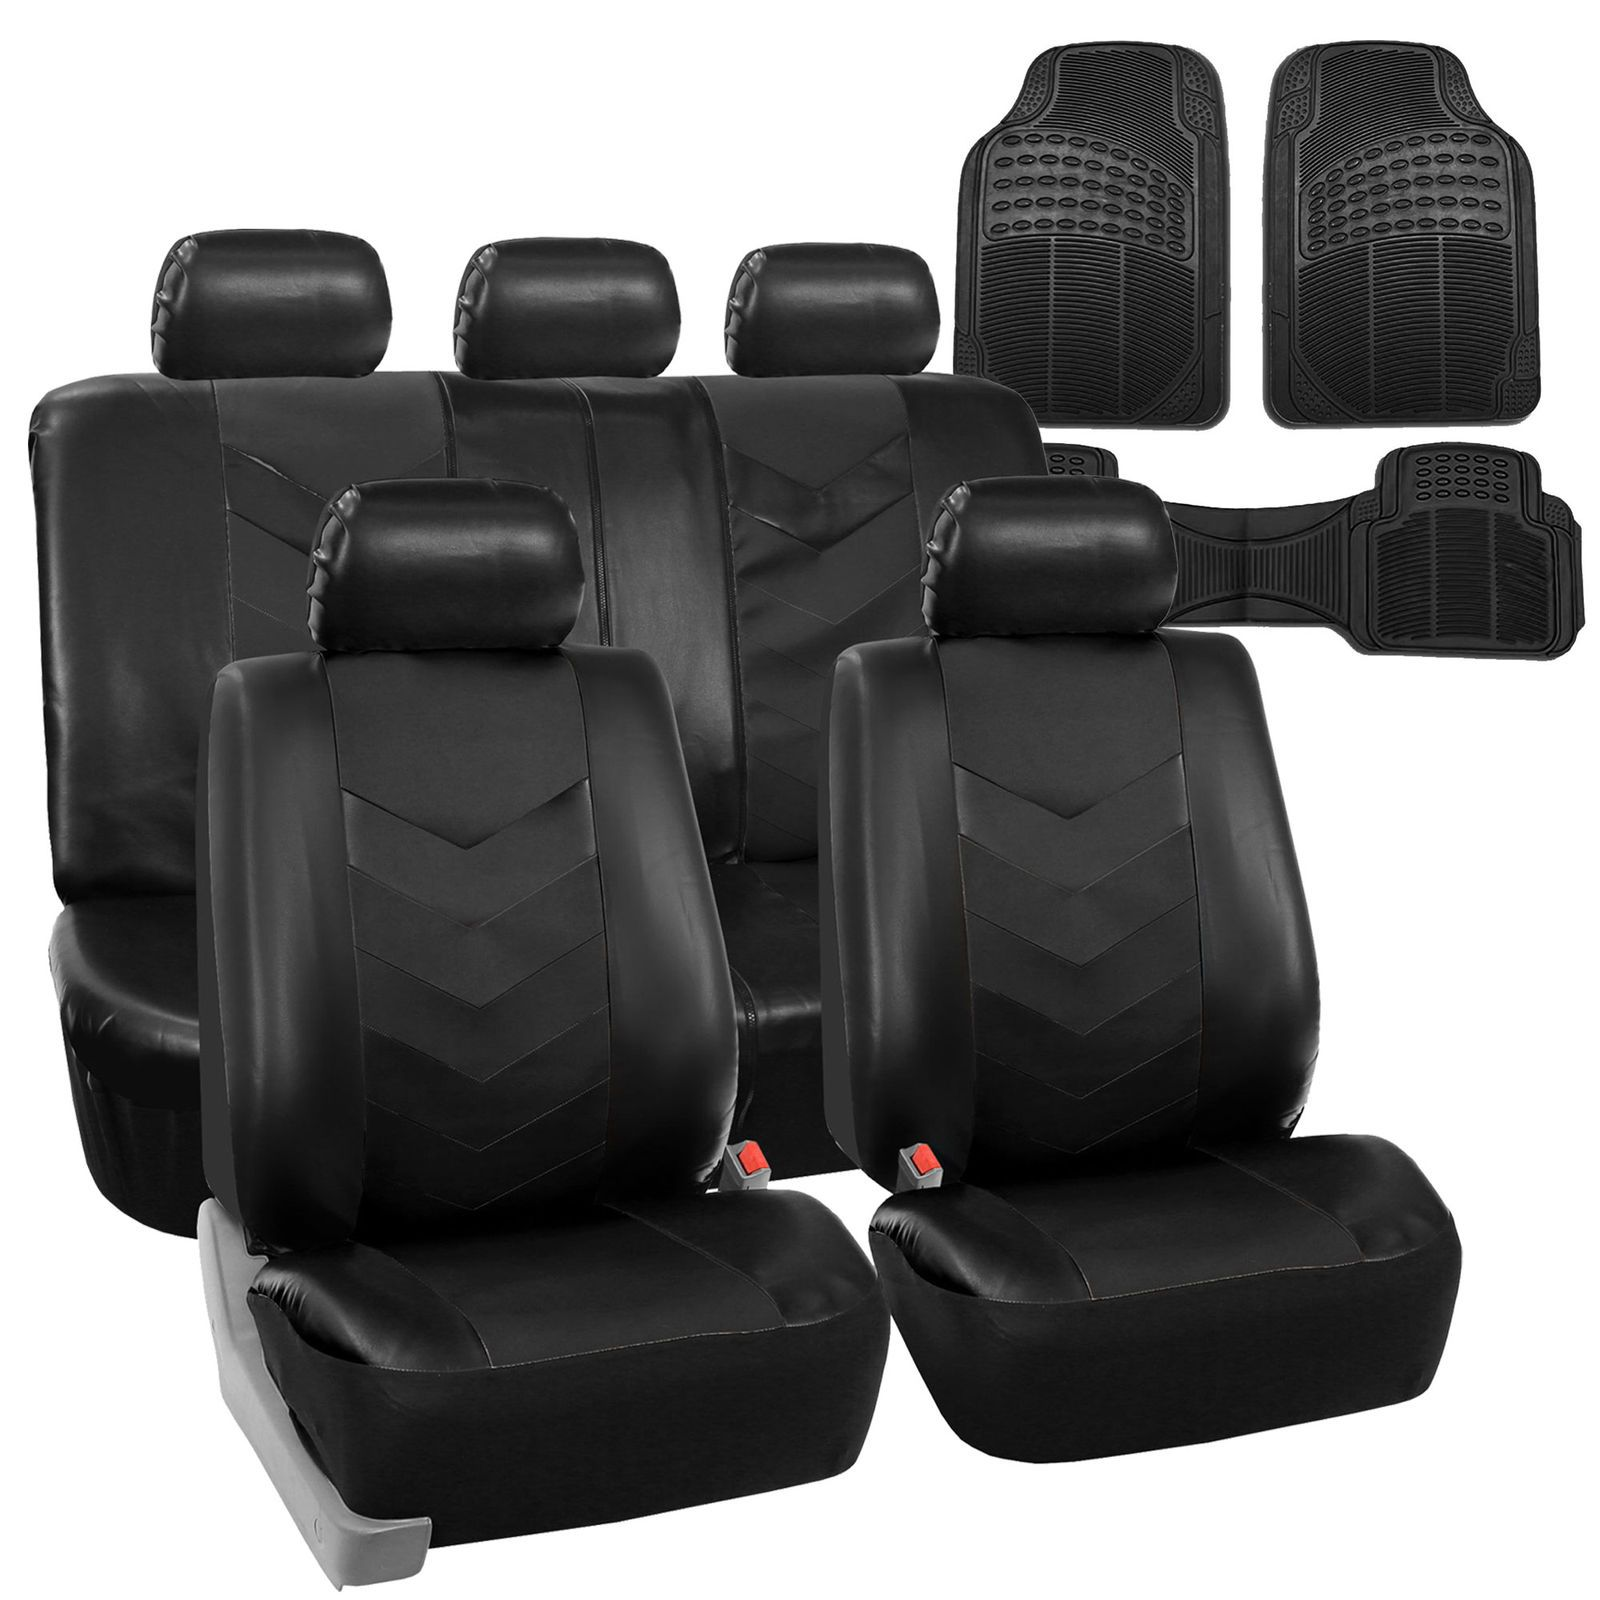 Used Faux Leather Car Seat Covers for Auto Black W/ Heavy